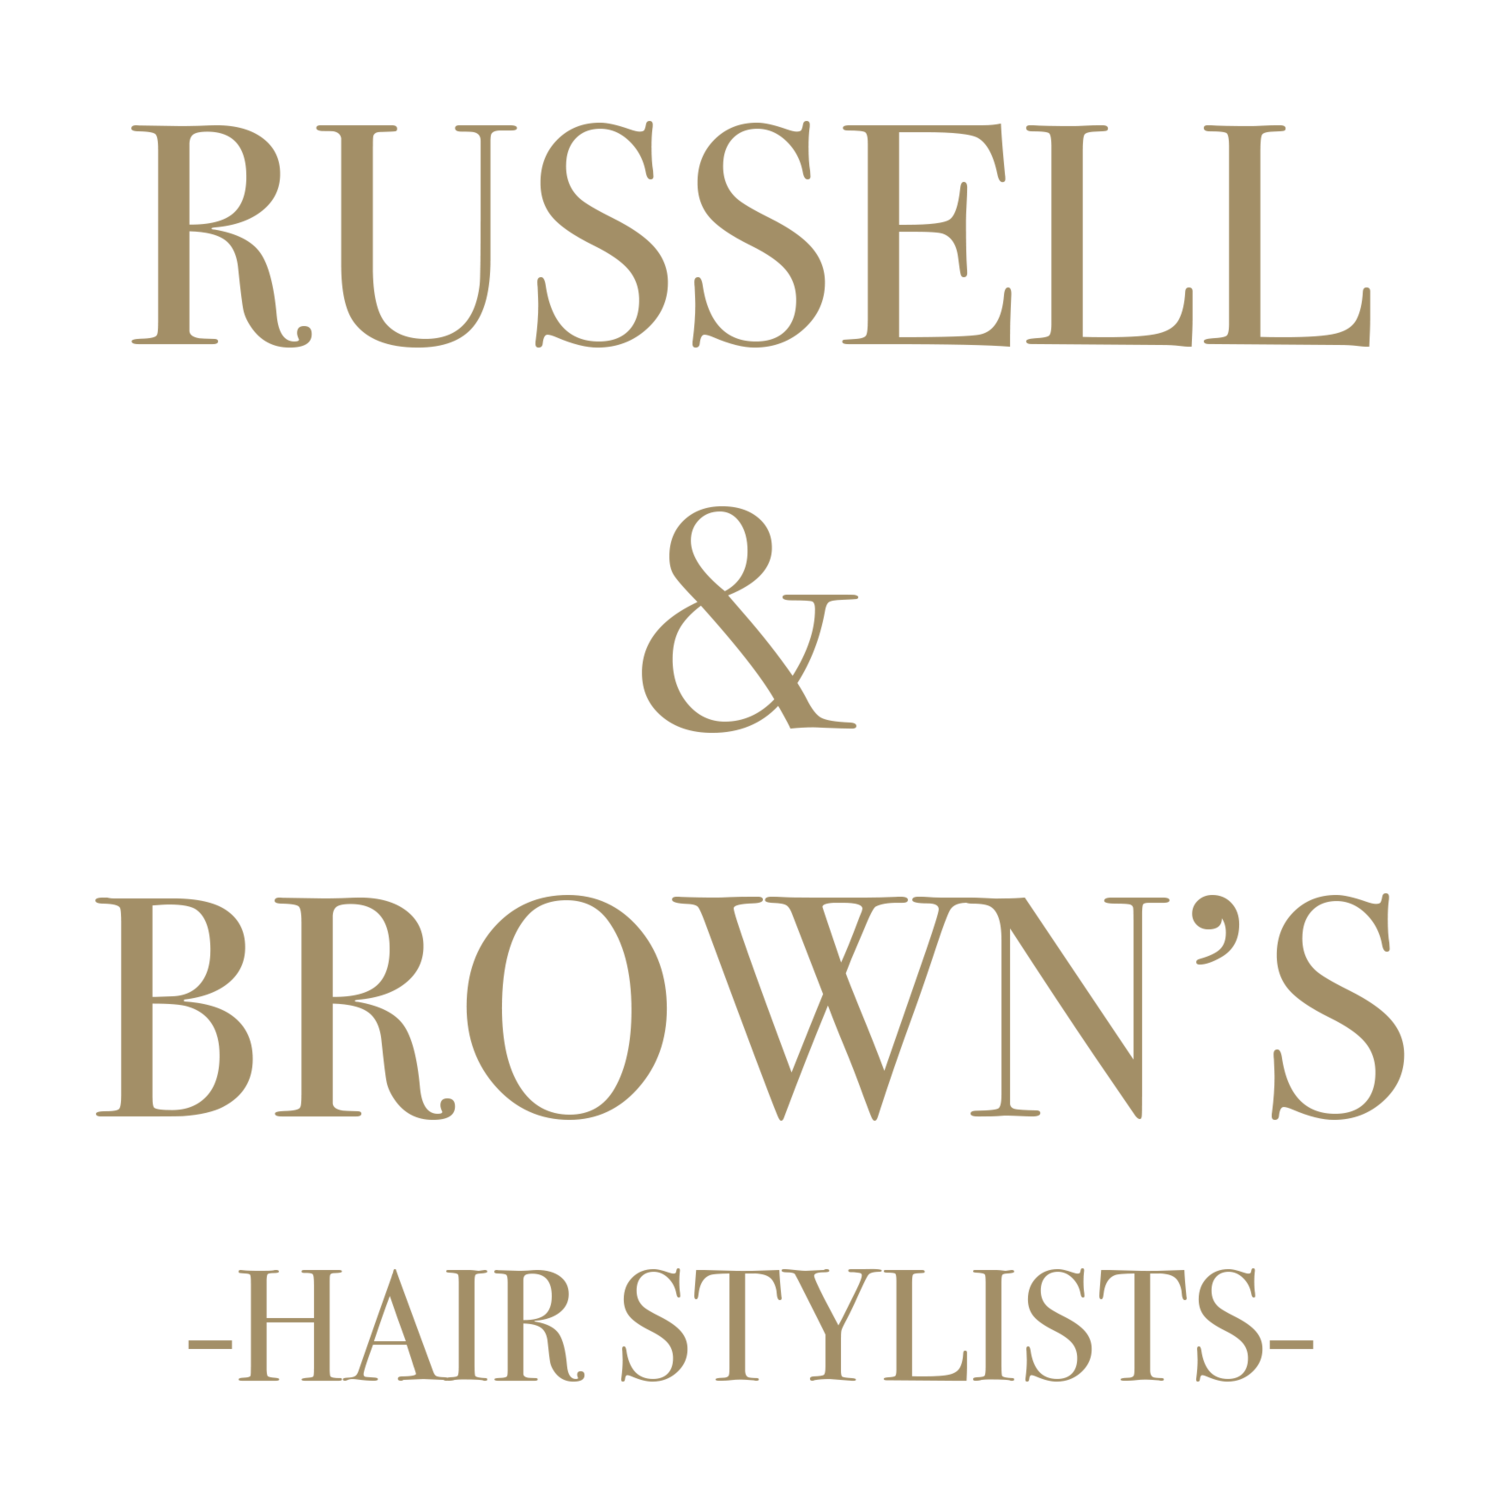 Russell & Brown's